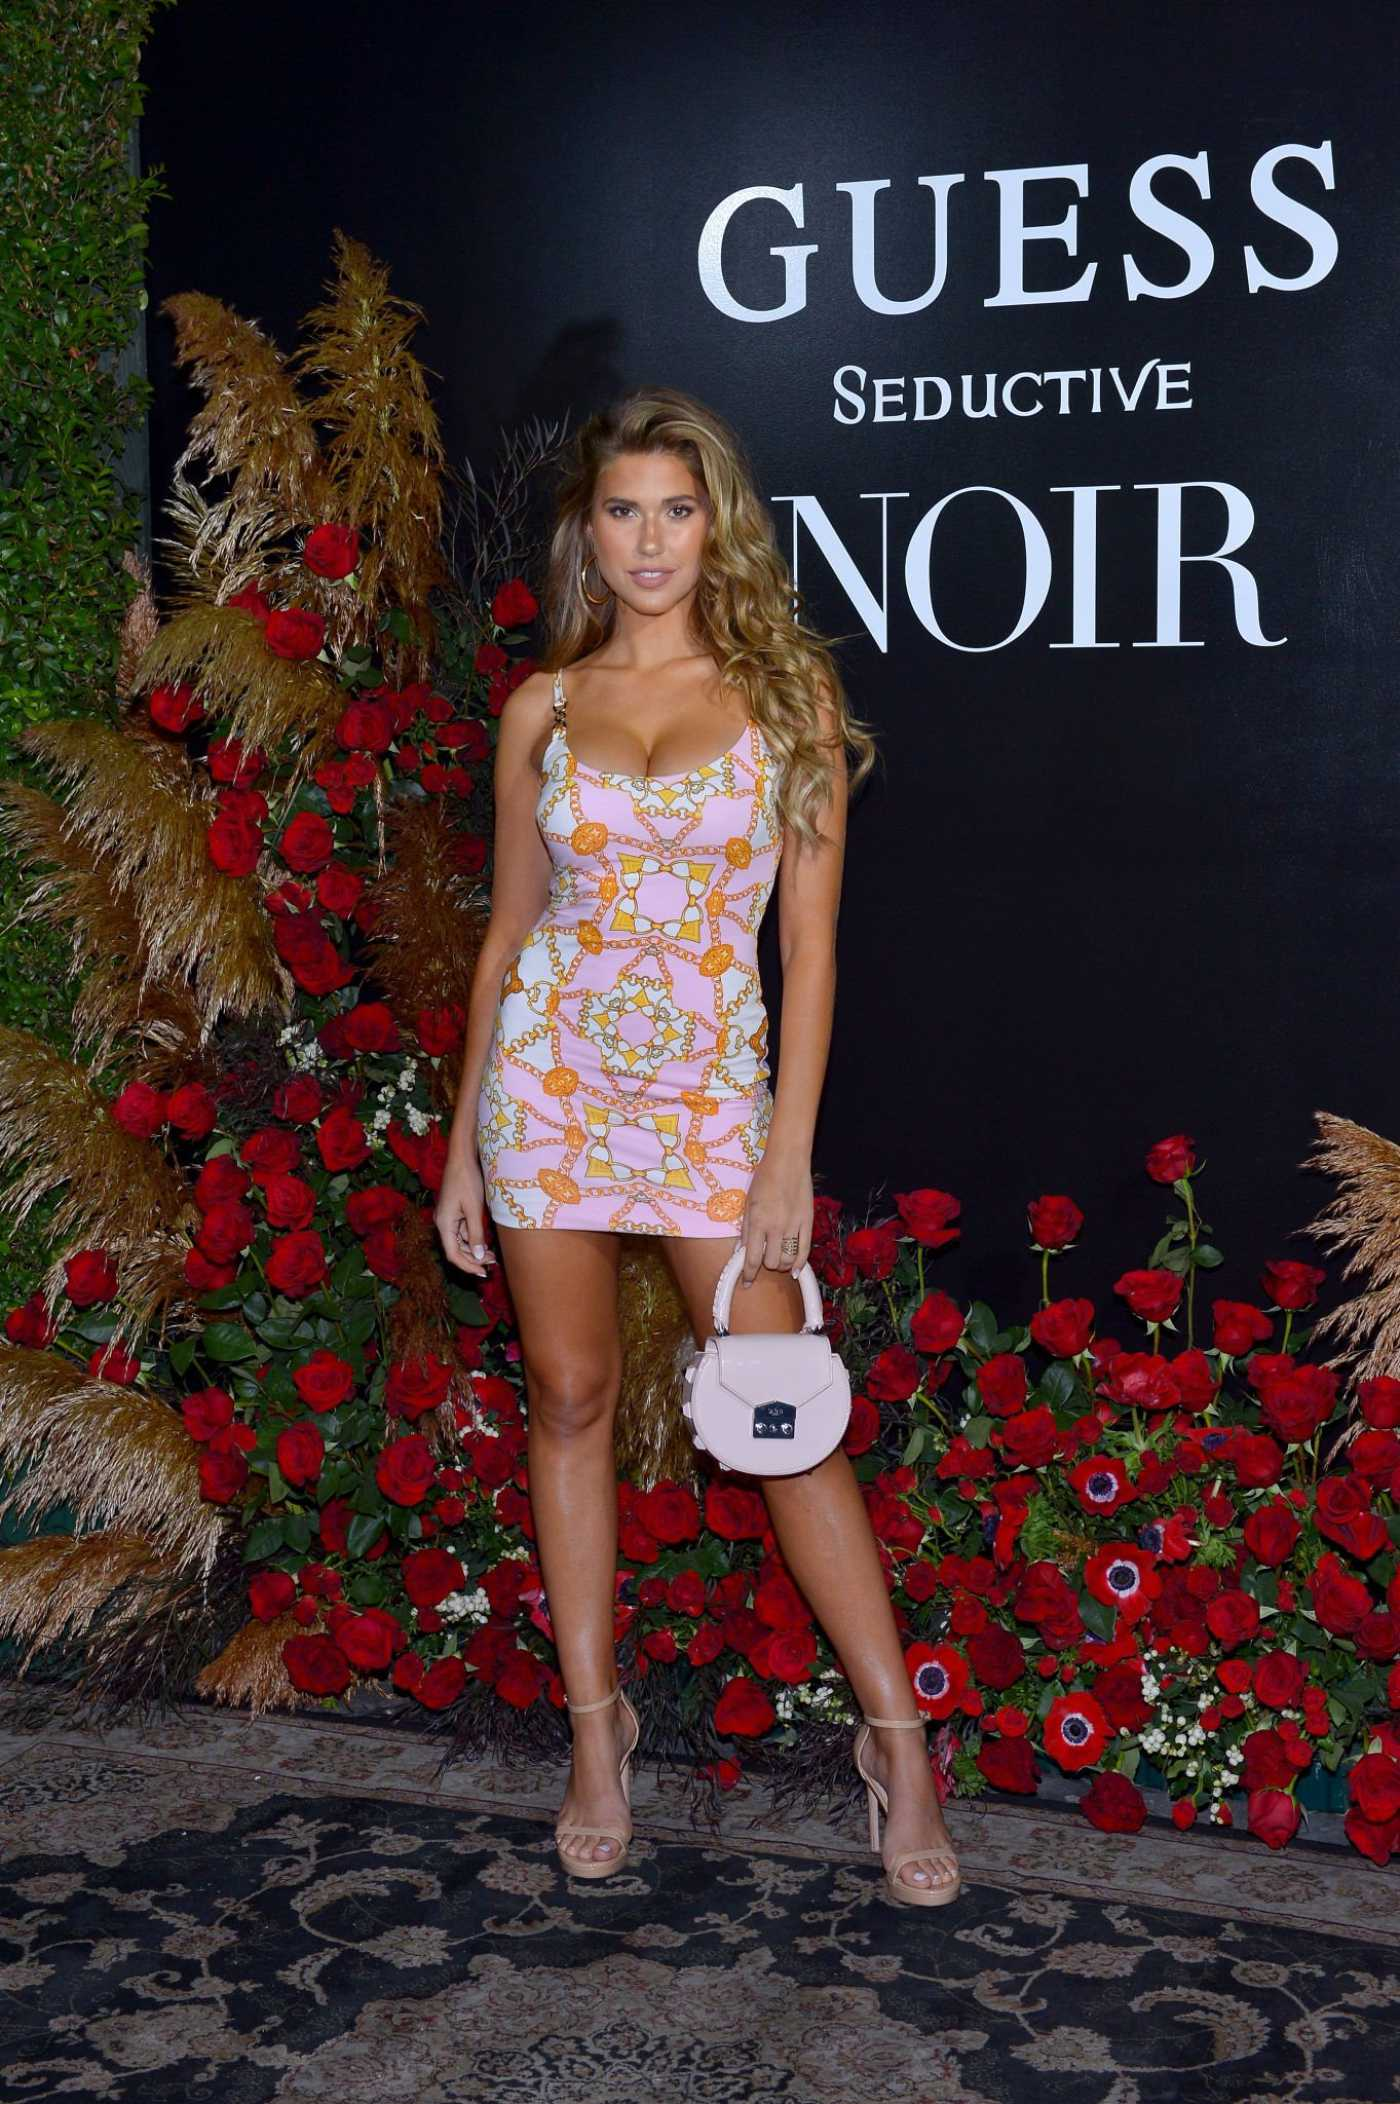 Kara Del Toro Attends the Guess Seductive Noir Fragrance Launch in Los Angeles 09/26/2019